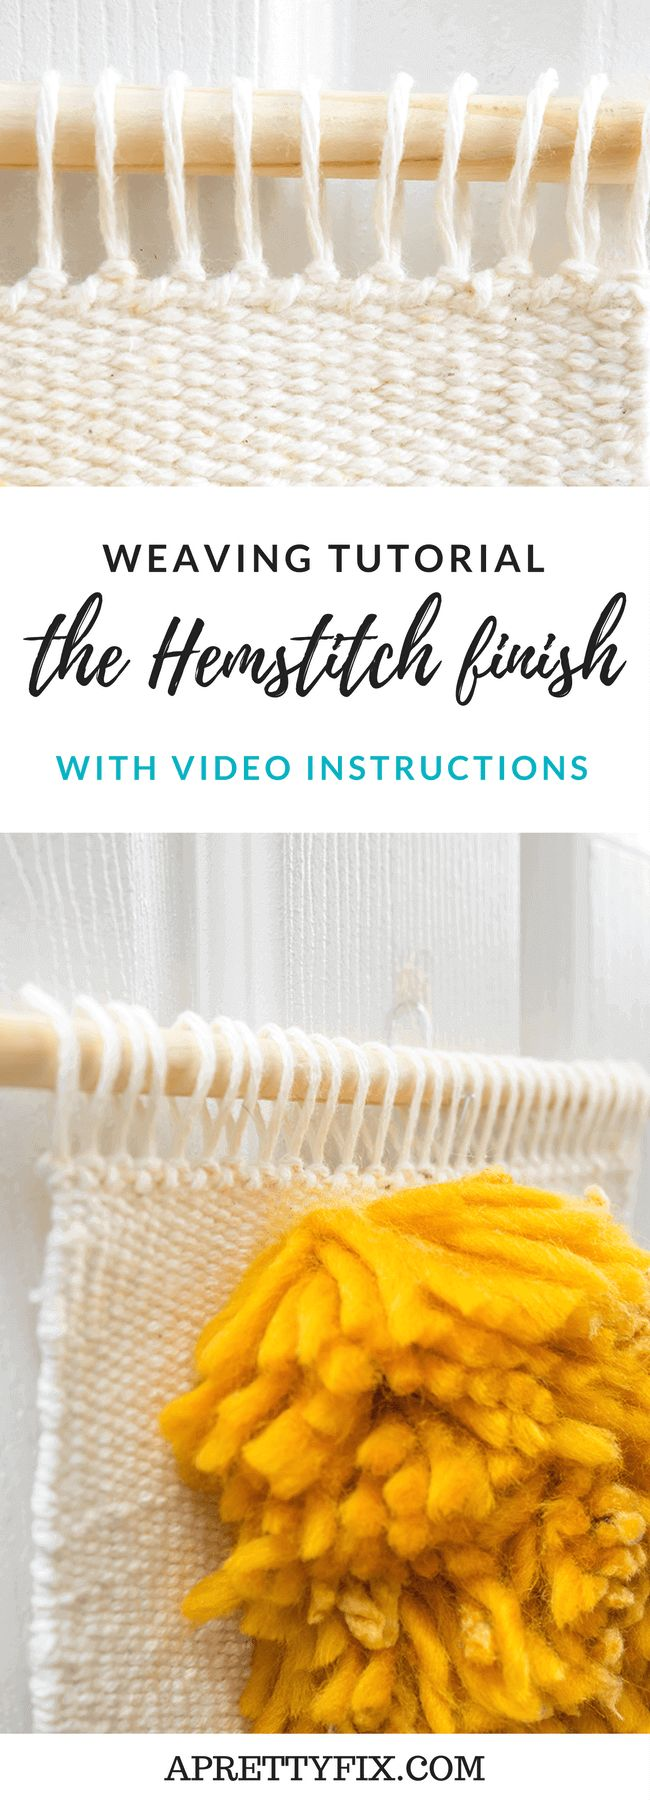 Weaving Tutorial | Woven Hemstitch Finish (video instructions included) | DIY | crafts | frame loom weaving